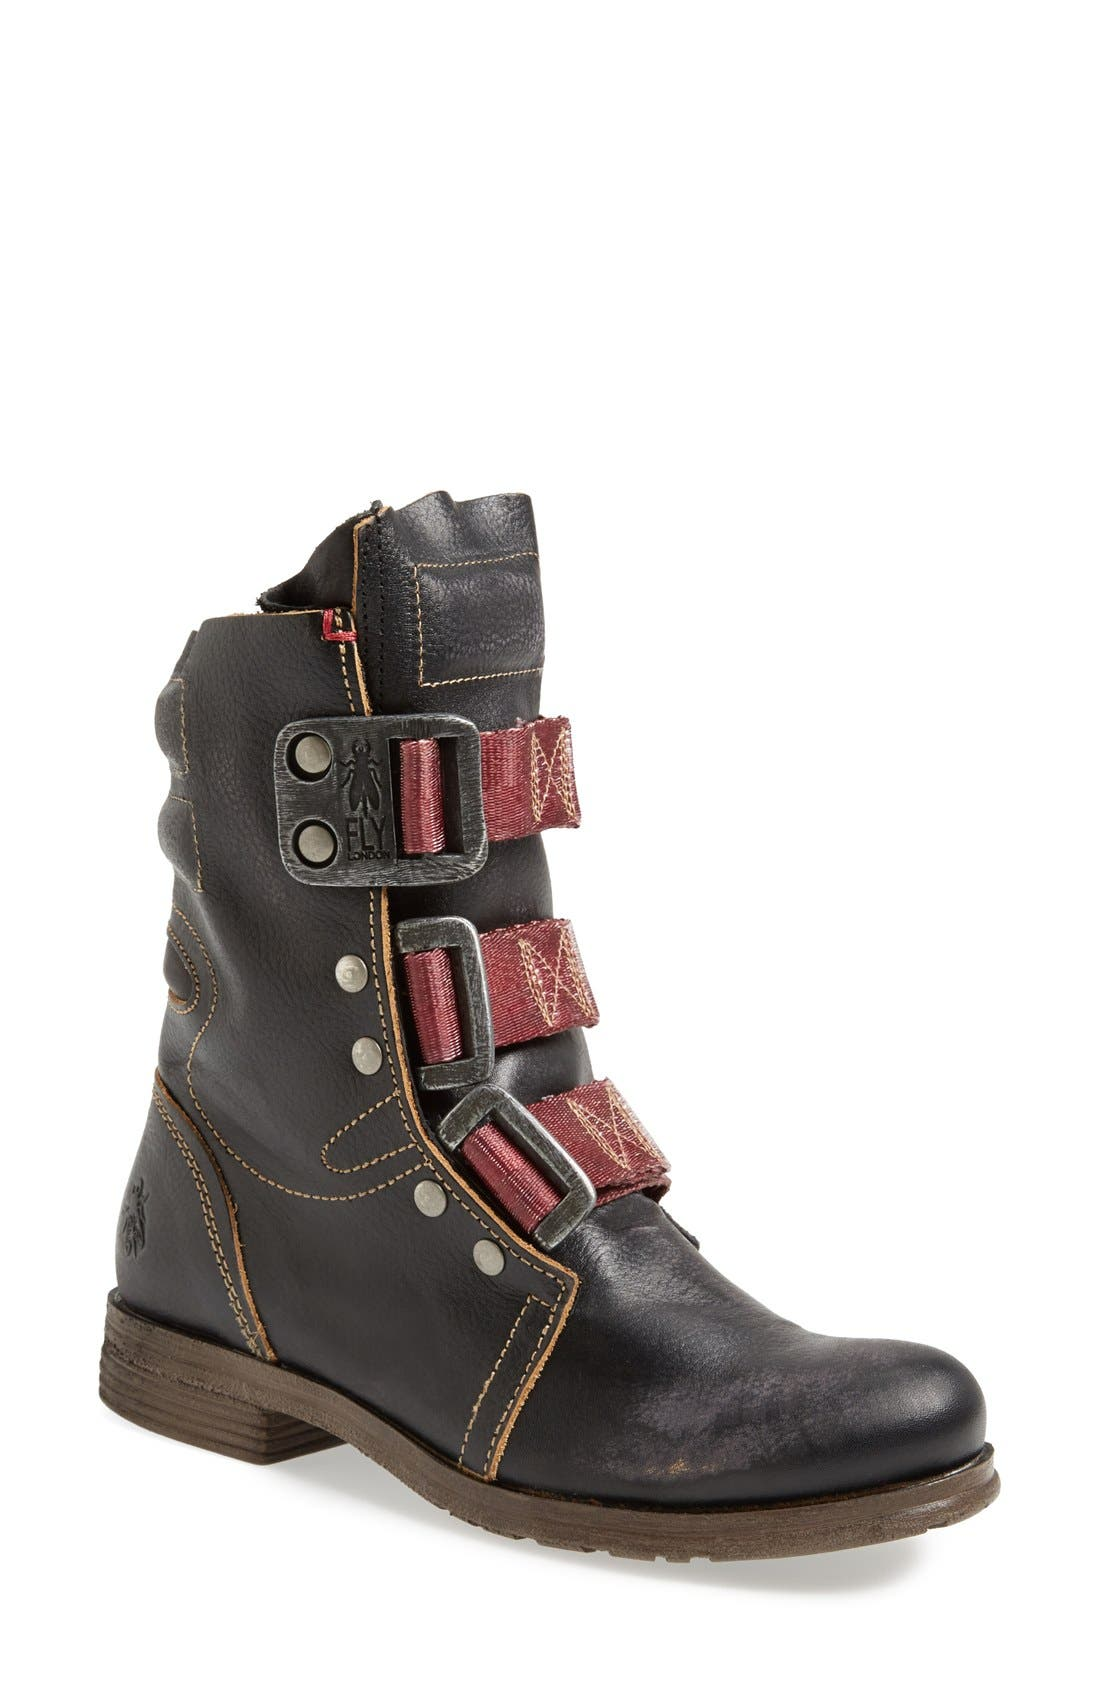 Alternate Image 1 Selected - Fly London 'Stif' Military Boot (Women)